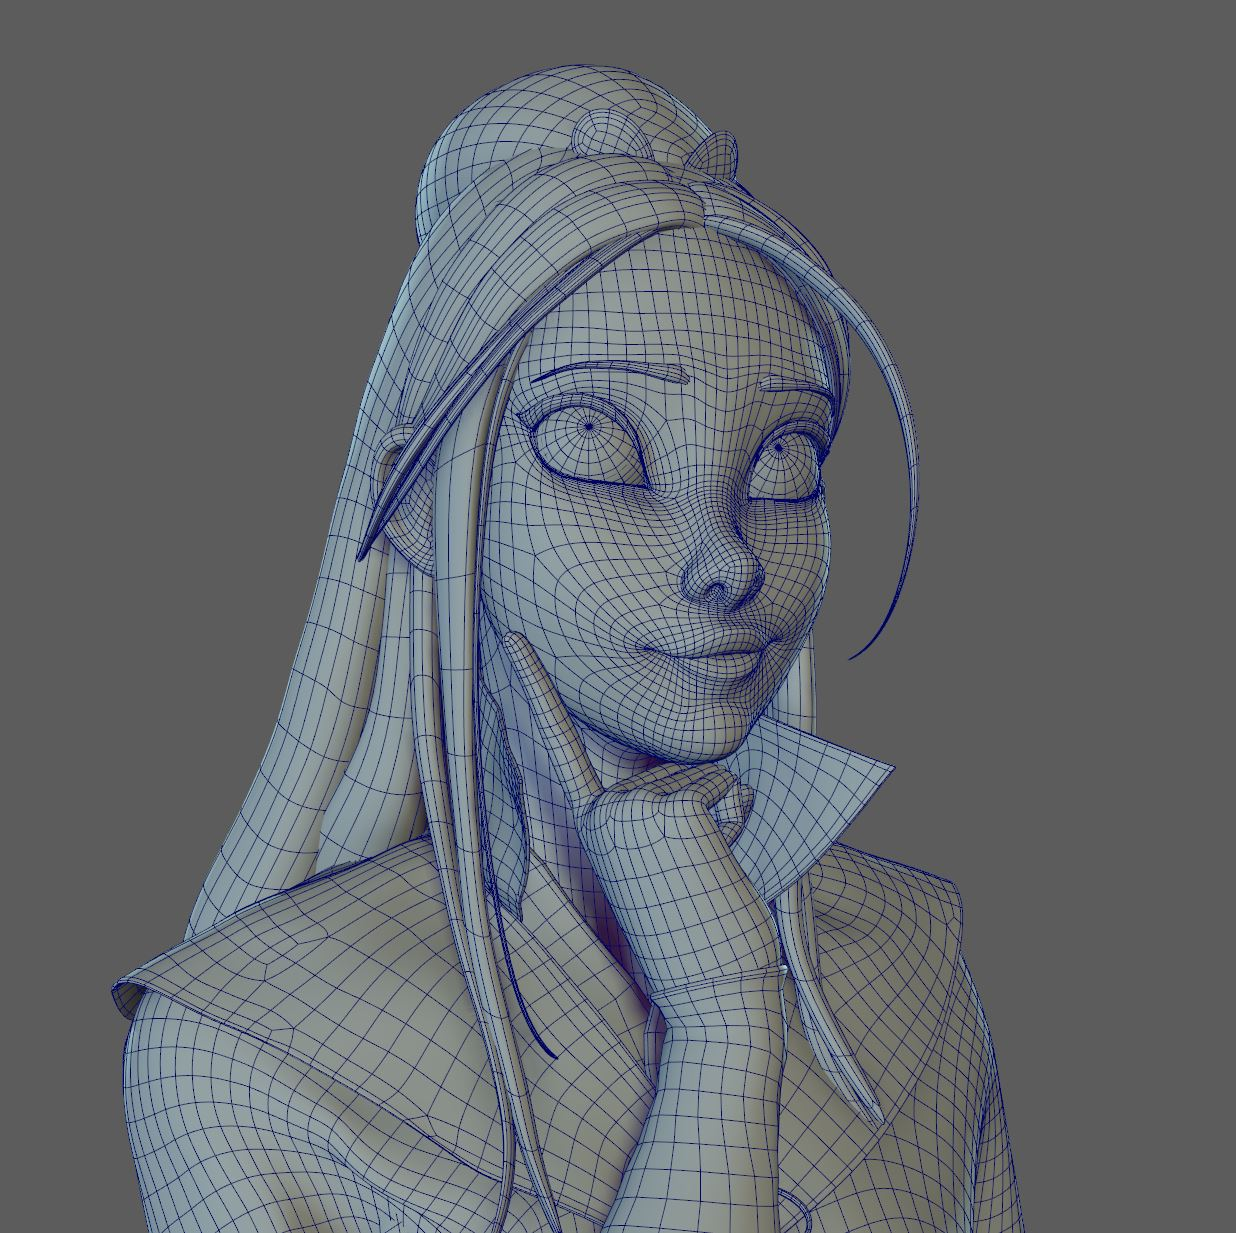 rig_test_2_topology